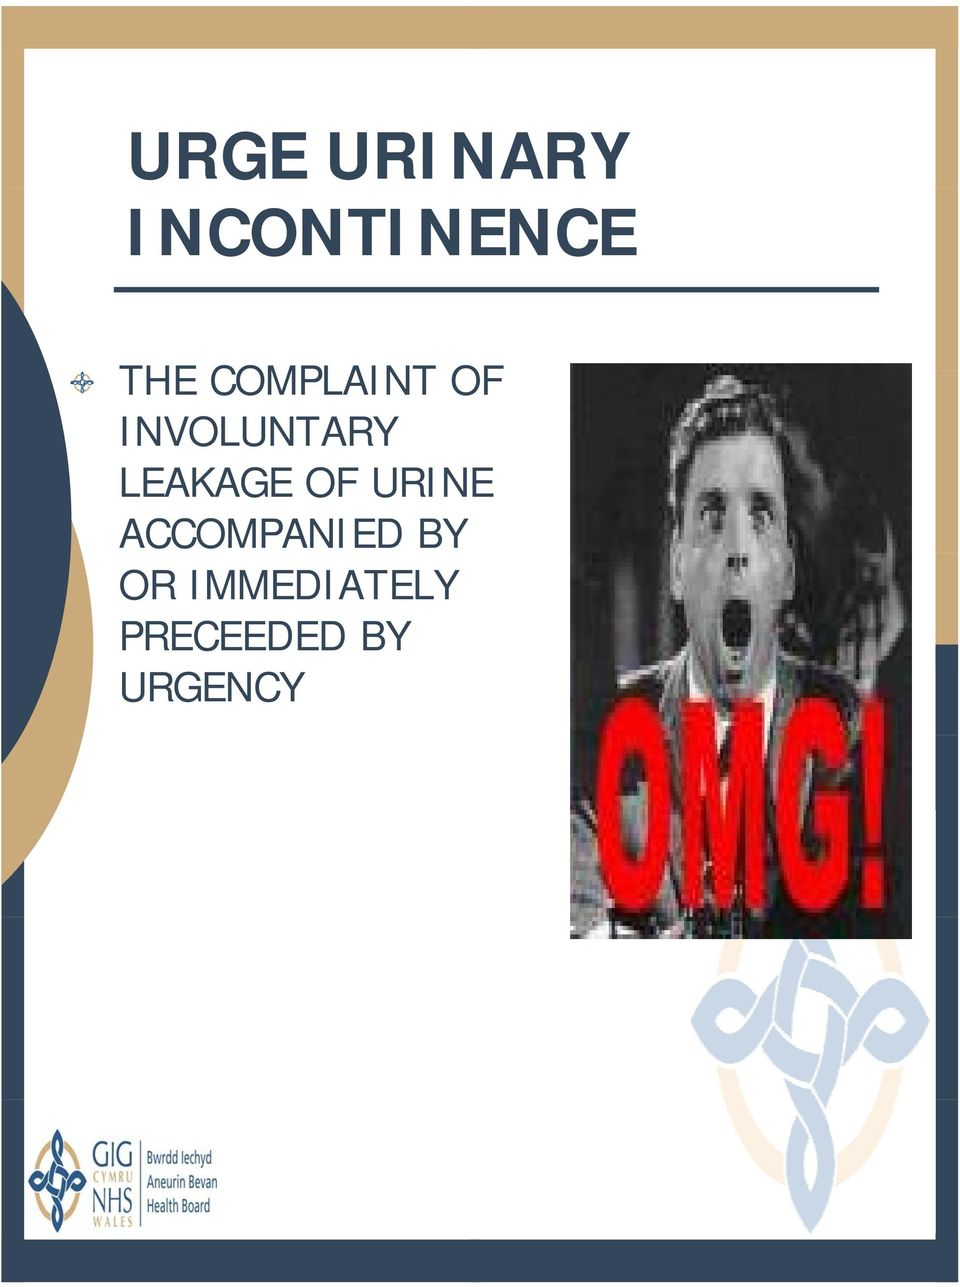 INVOLUNTARY LEAKAGE OF URINE